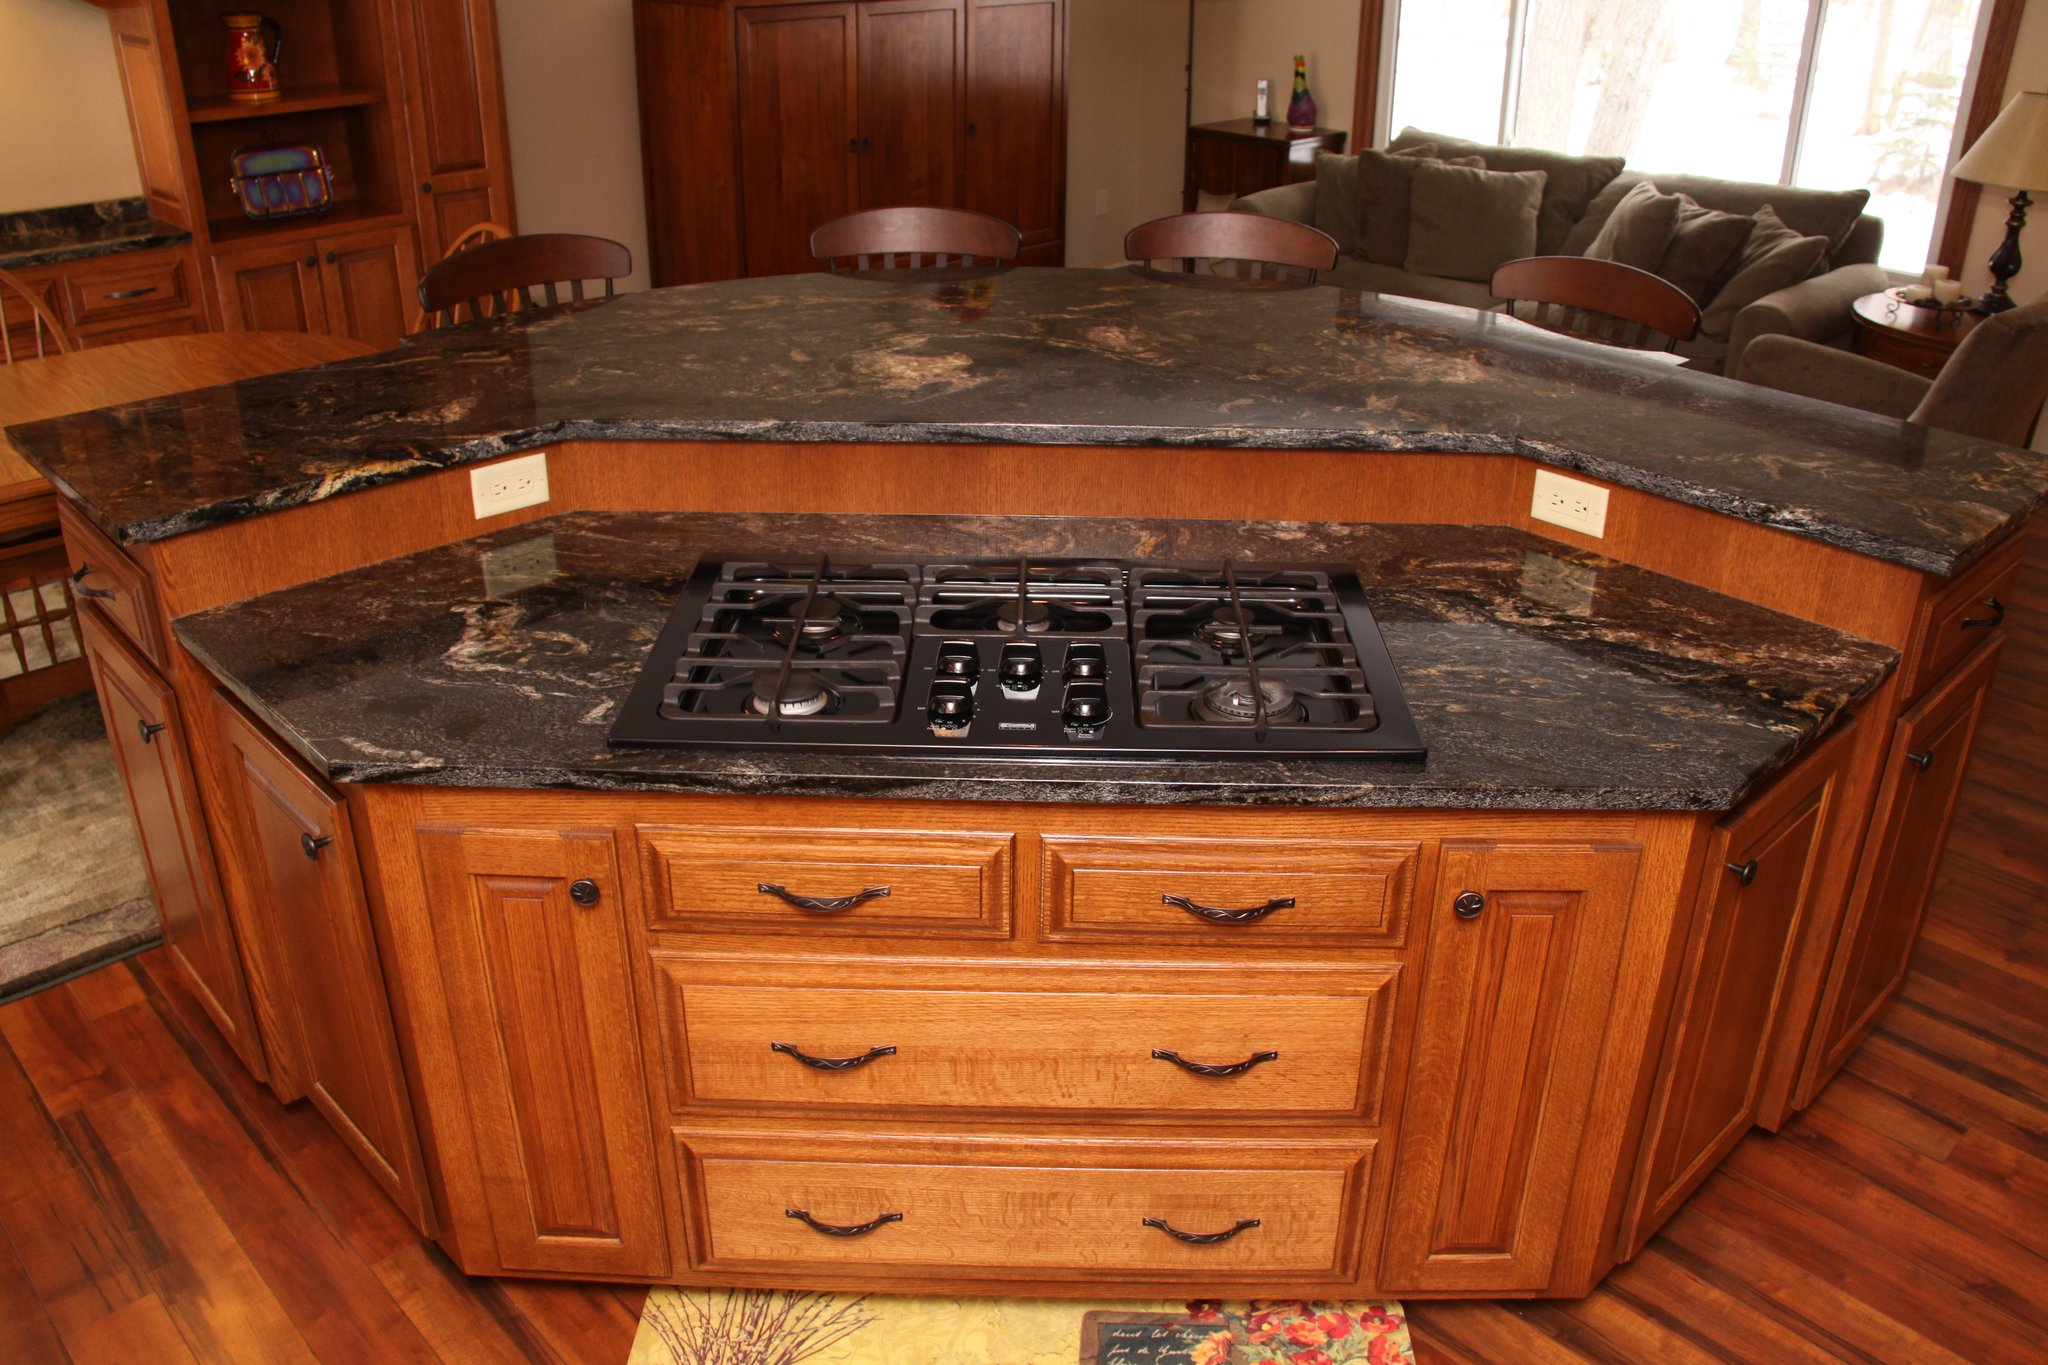 Sink Cooktop And Dishwasher In Kitchen Island